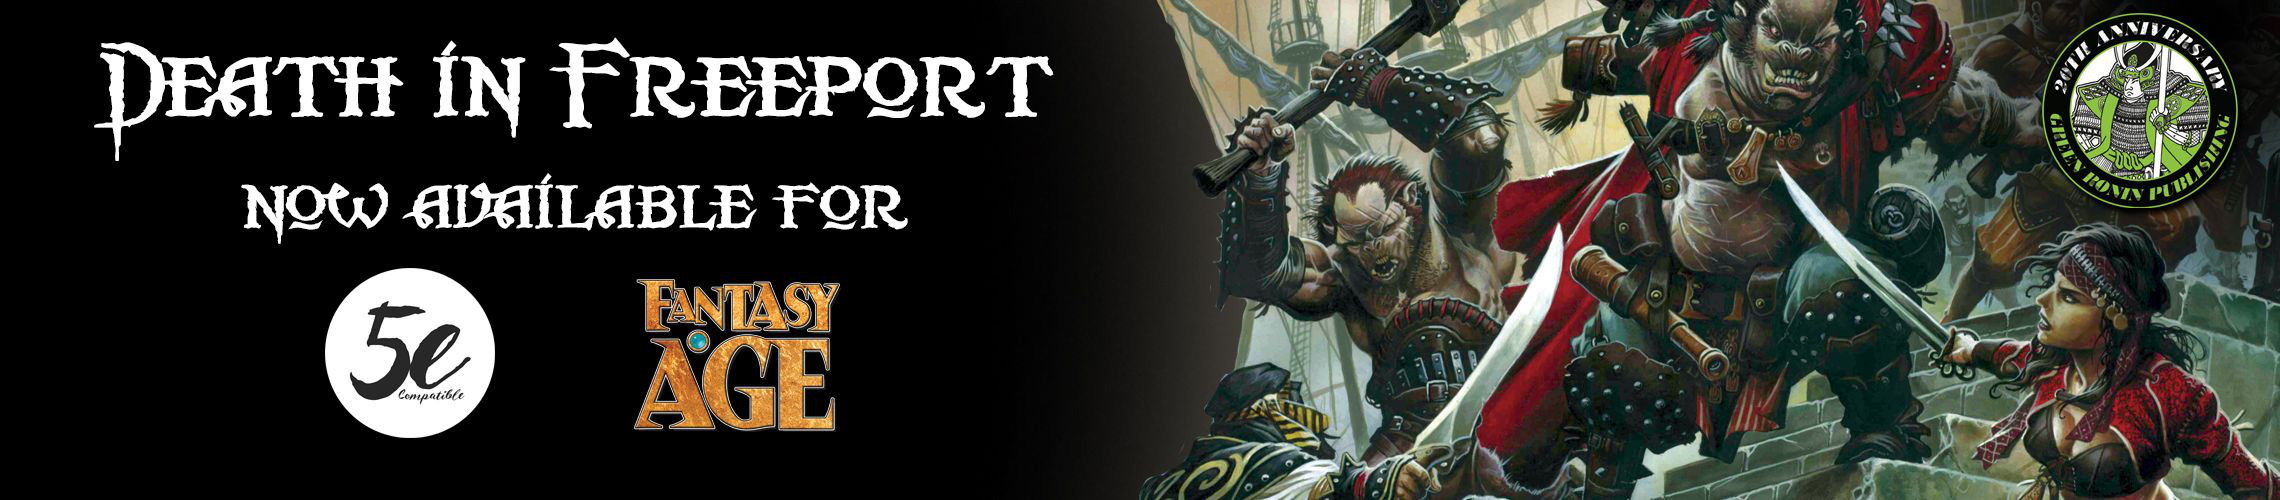 Death in Freeport: Now Available for 5e and Fantasy AGE RPG